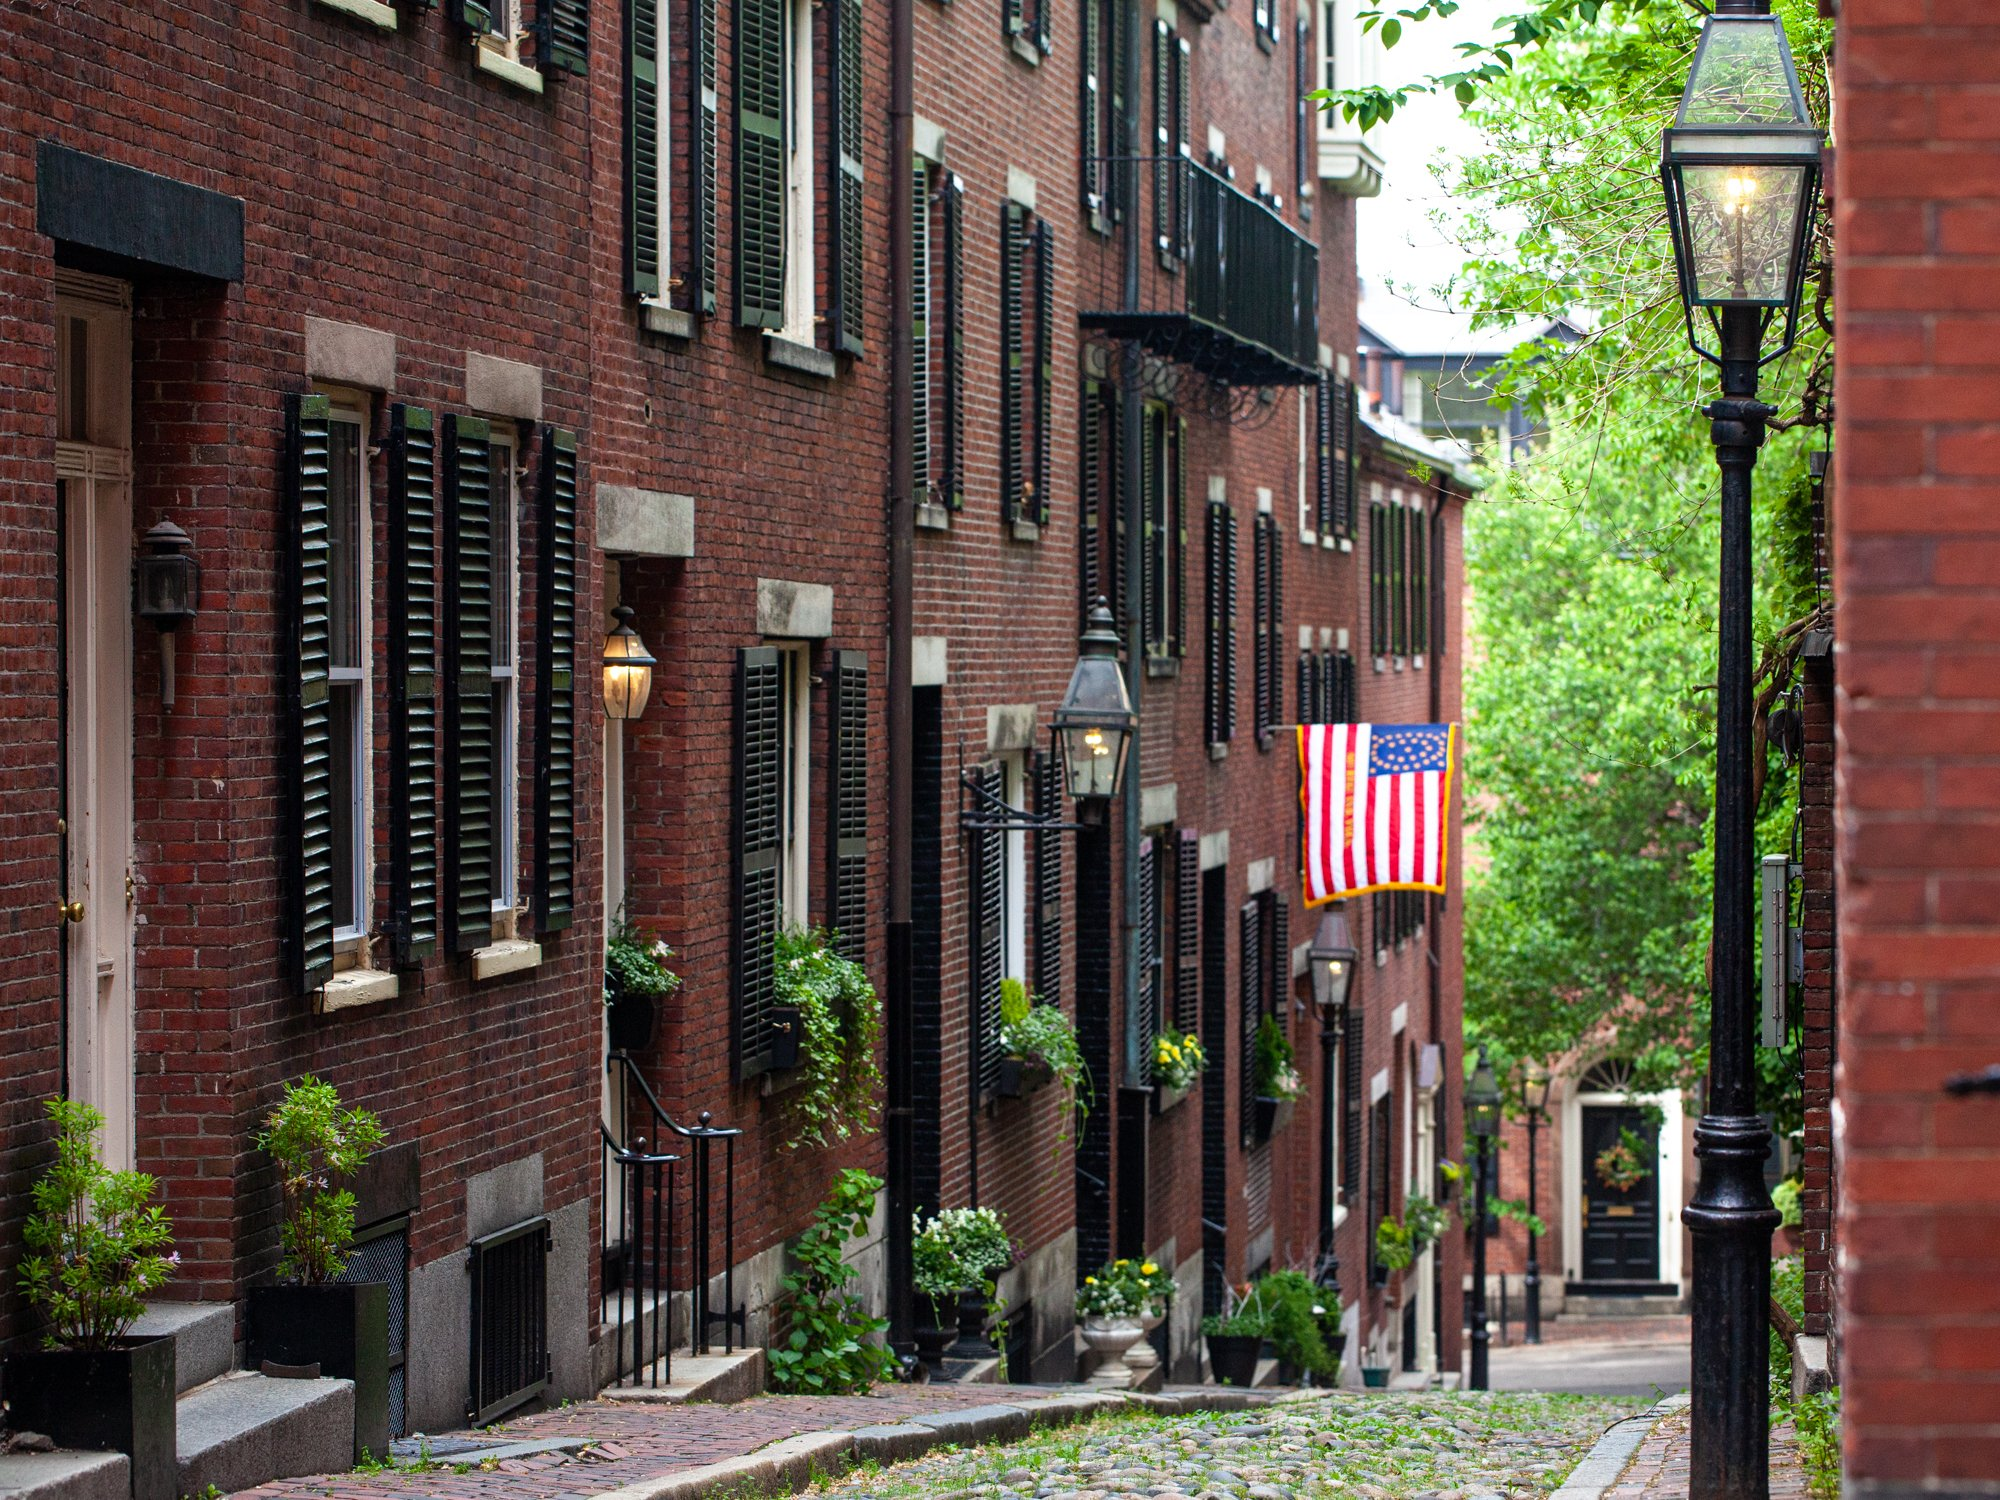 Discover my local photographer's guide to the most Instagram-worthy places to visit in Boston, including Acorn Street - the most Instagrammed street in Boston.